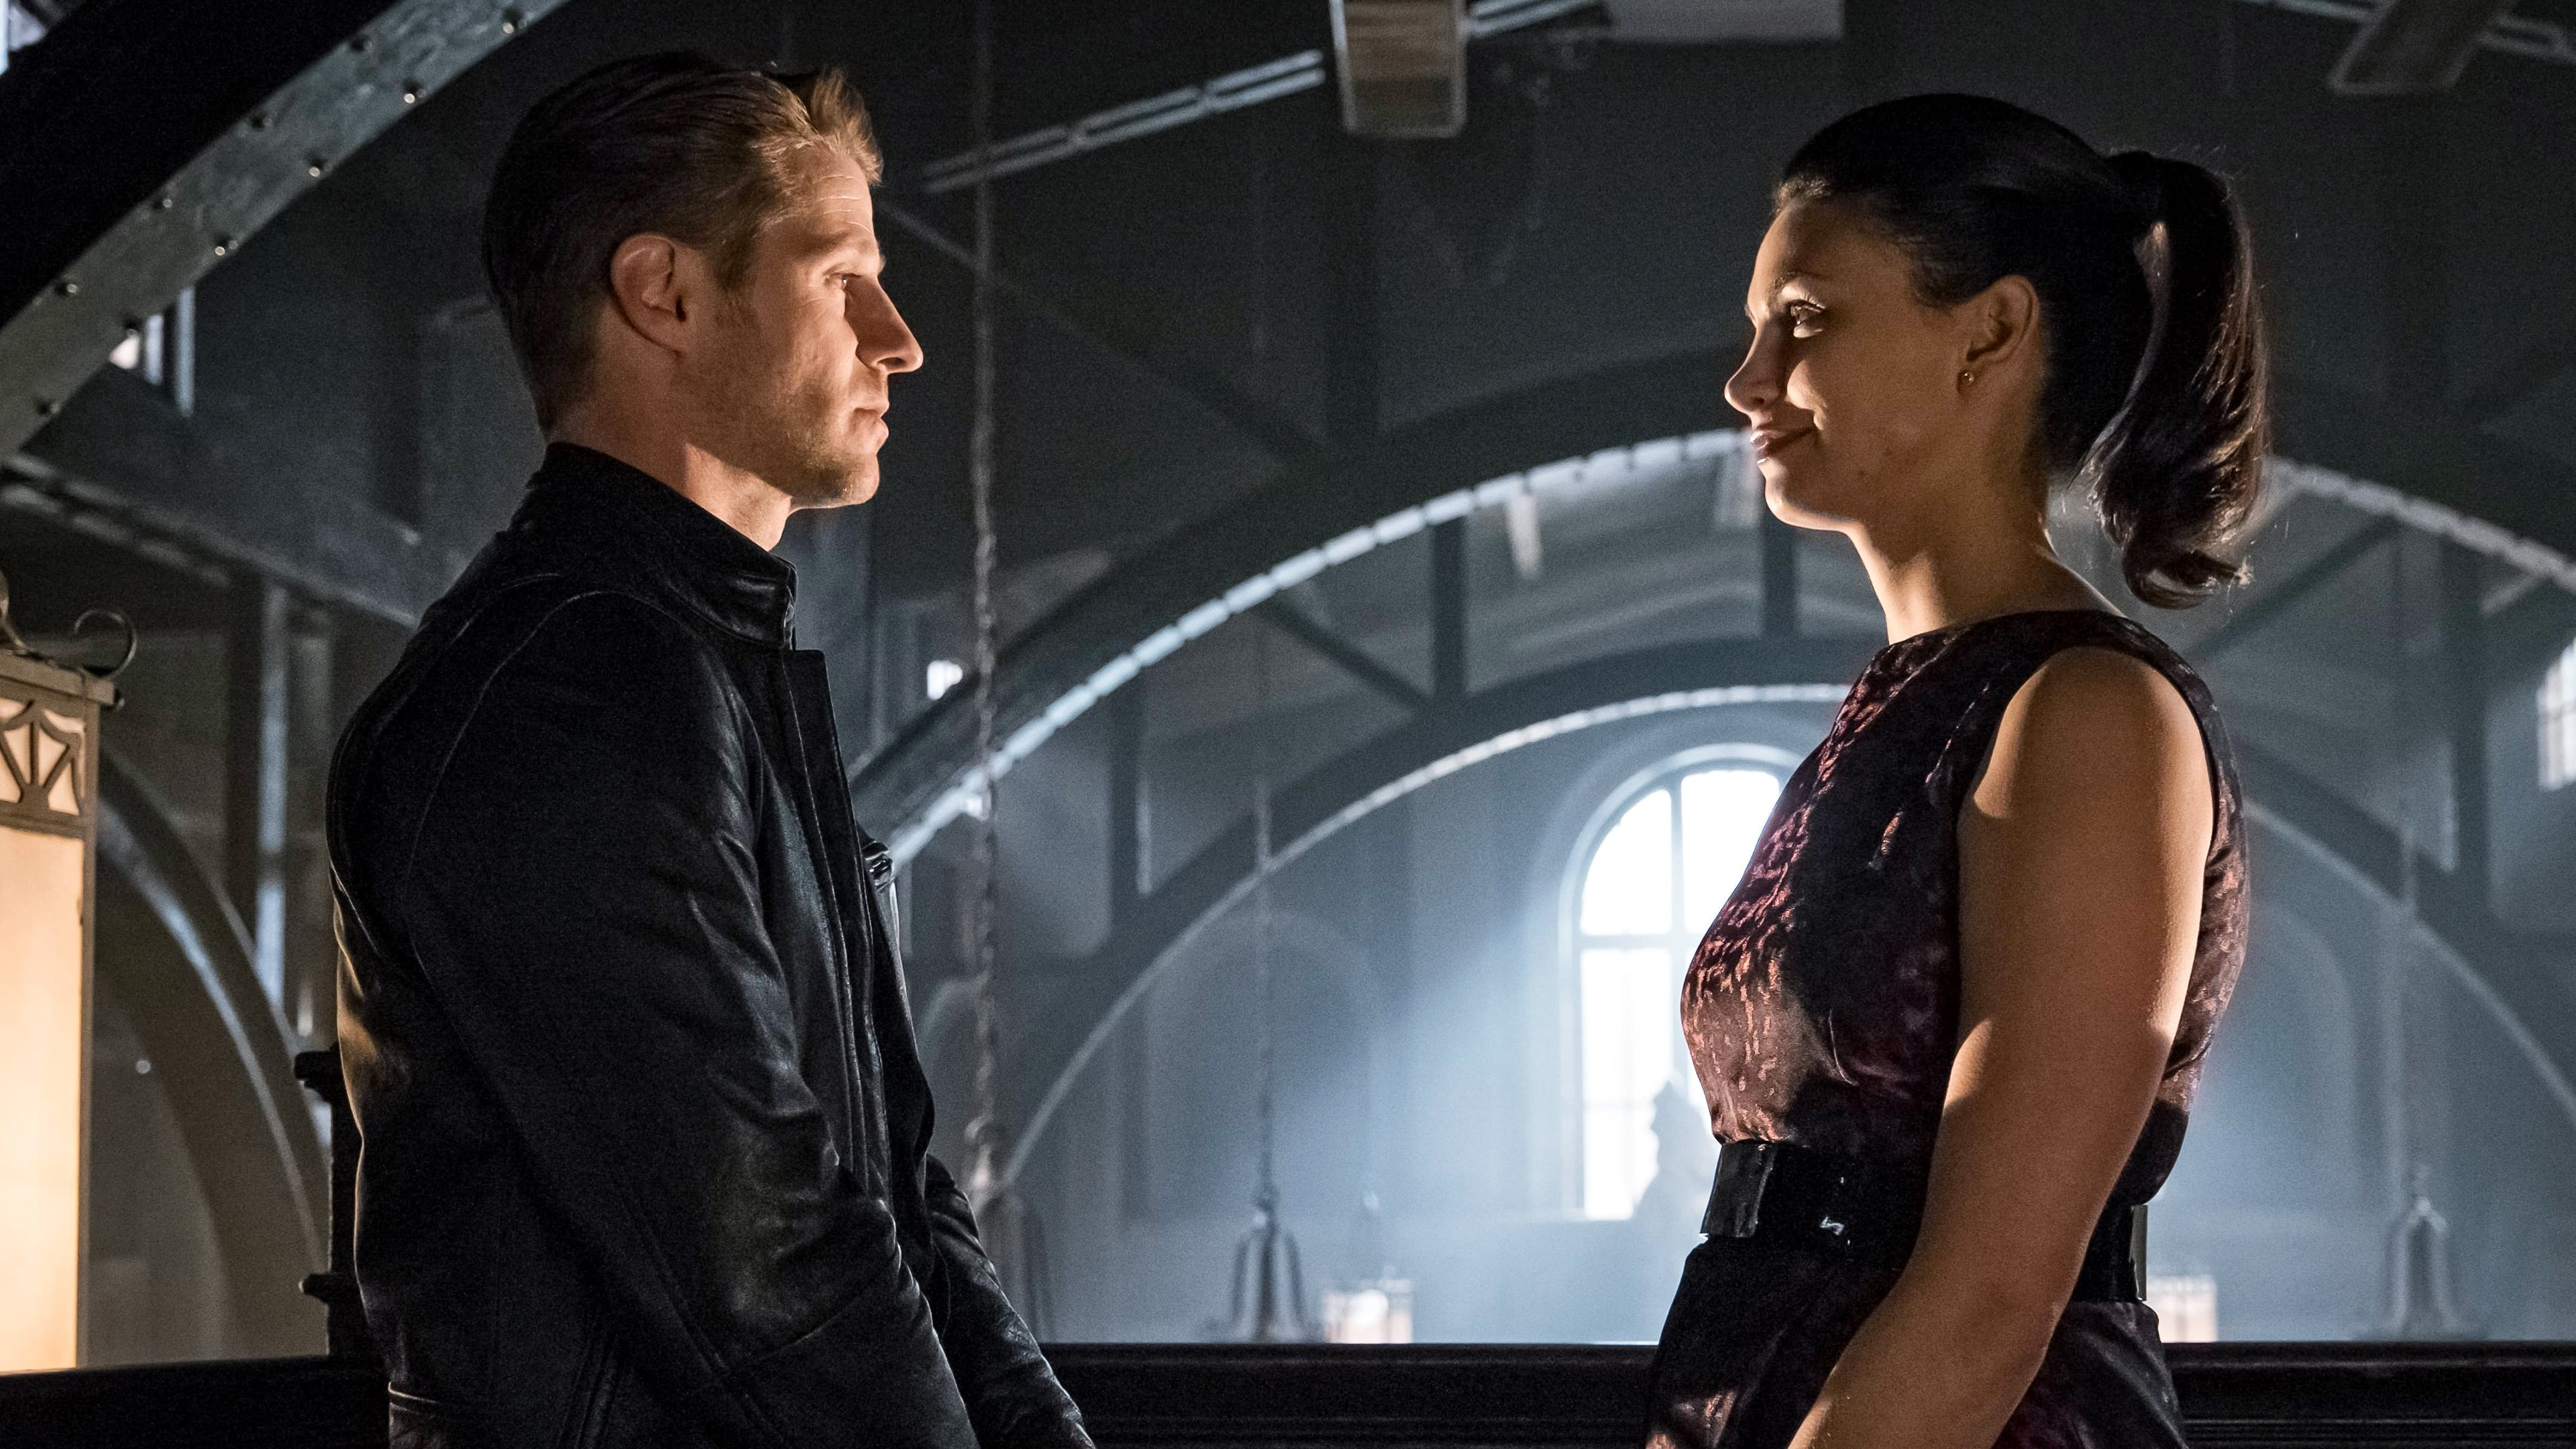 Gotham - Season 3 Episode 5 : Mad City: Anything for You